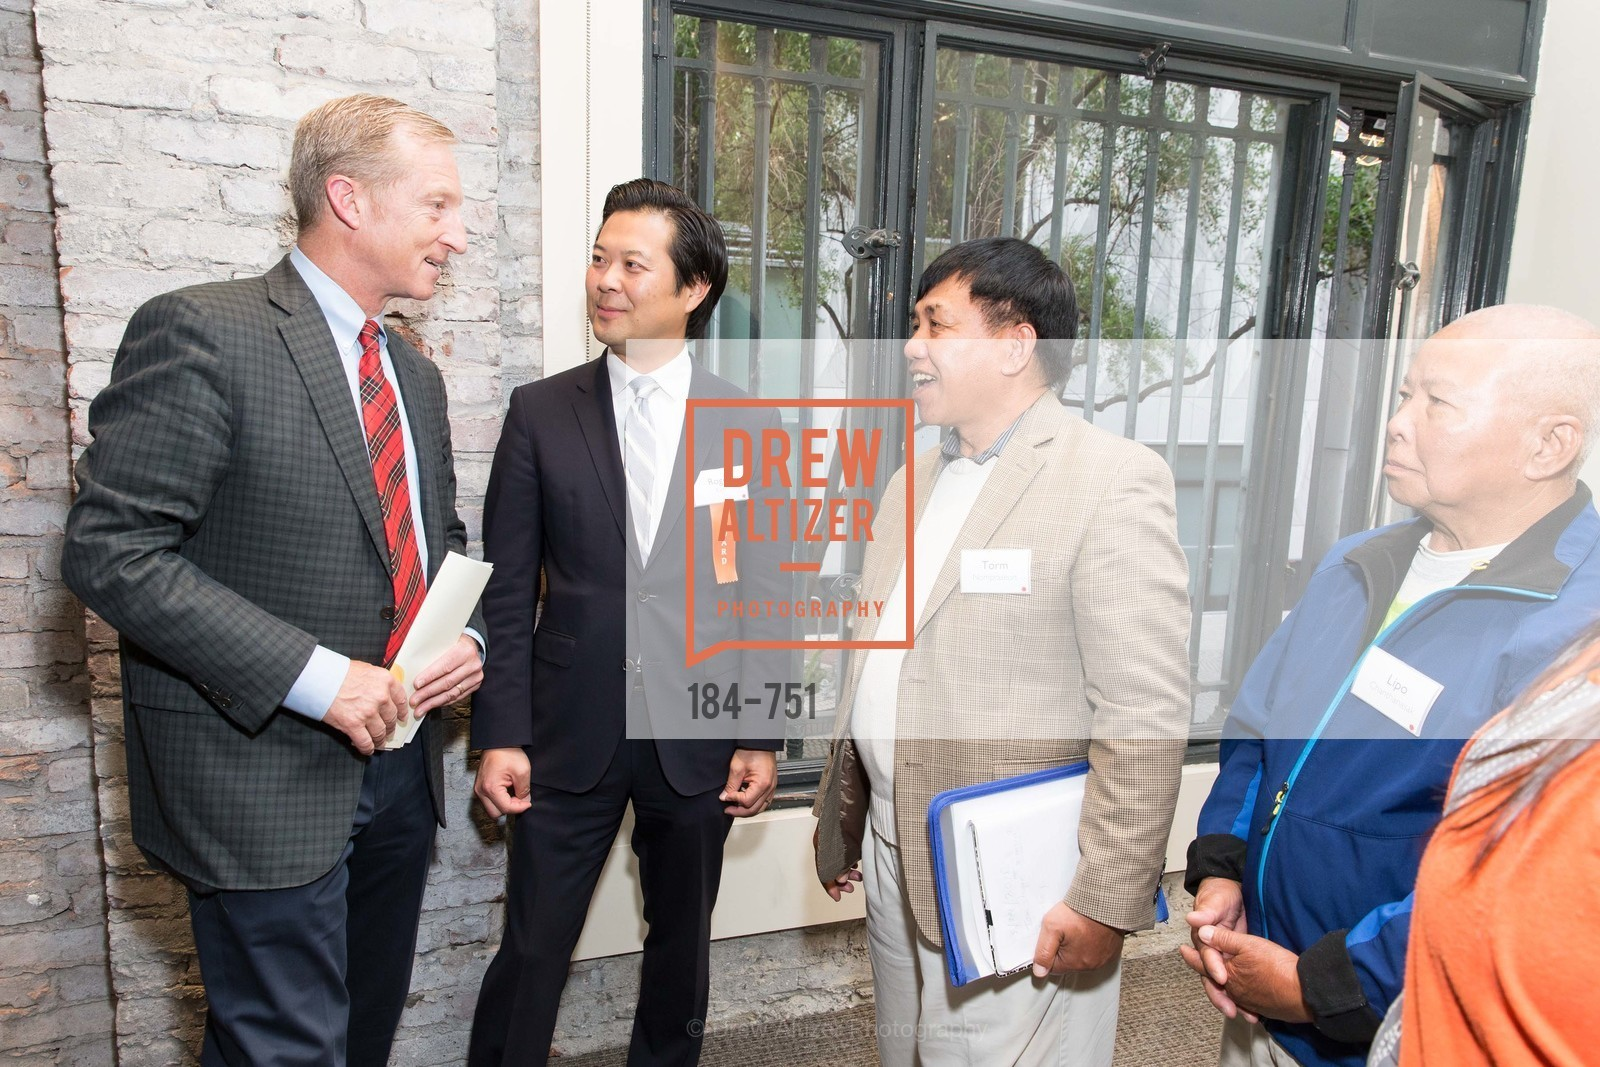 Tom Steyer, Roger Kim, Torm Nompraseurt, CENTER FOR ENVIRONMENTAL HEALTH (CEH) 2015 Gala, US, May 28th, 2015,Drew Altizer, Drew Altizer Photography, full-service agency, private events, San Francisco photographer, photographer california